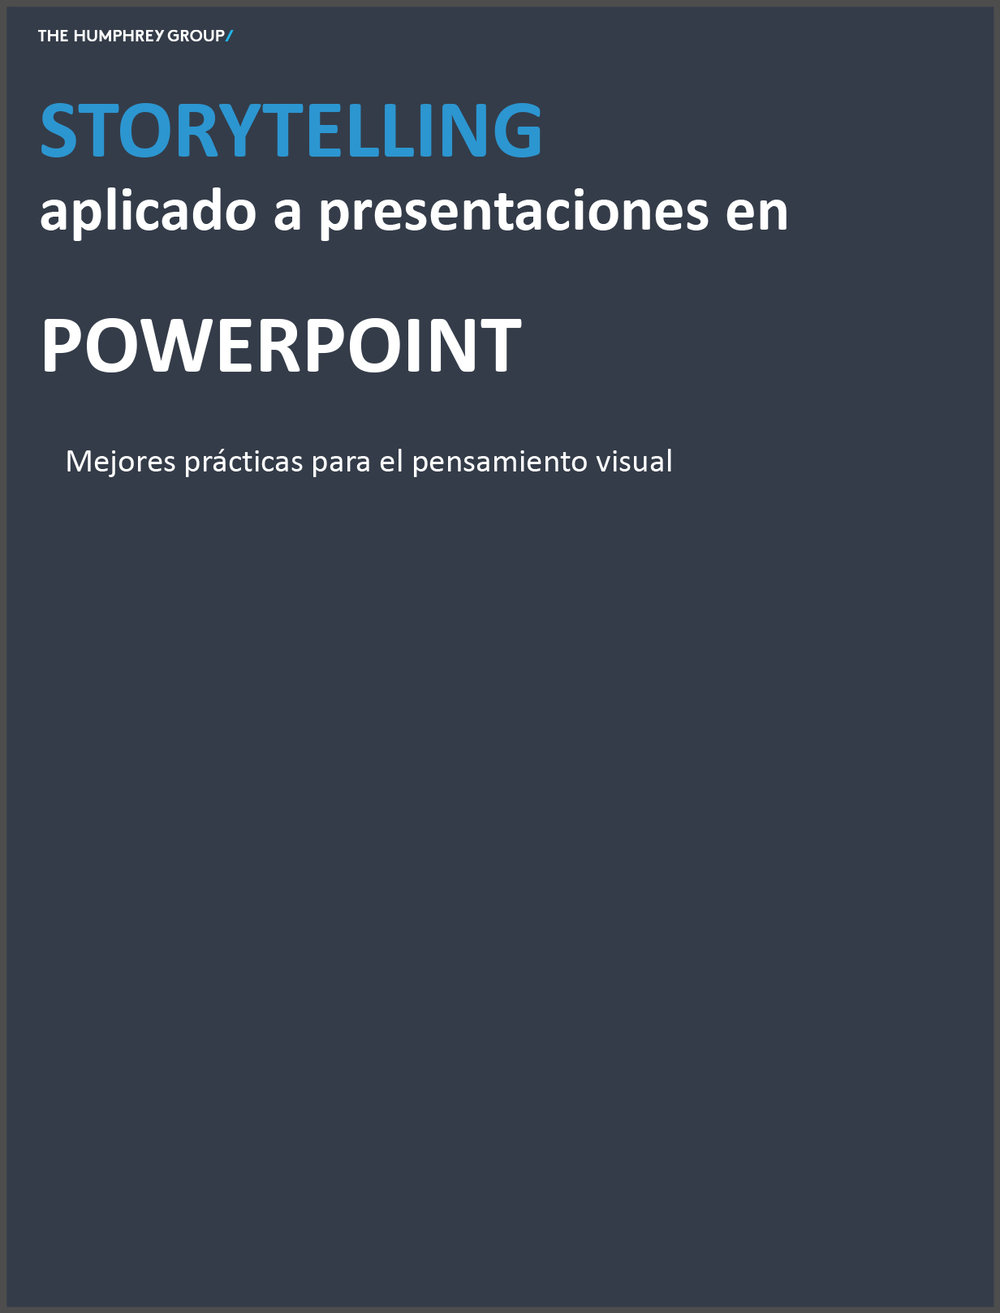 Mercer Powerpoint Slides ES.jpg